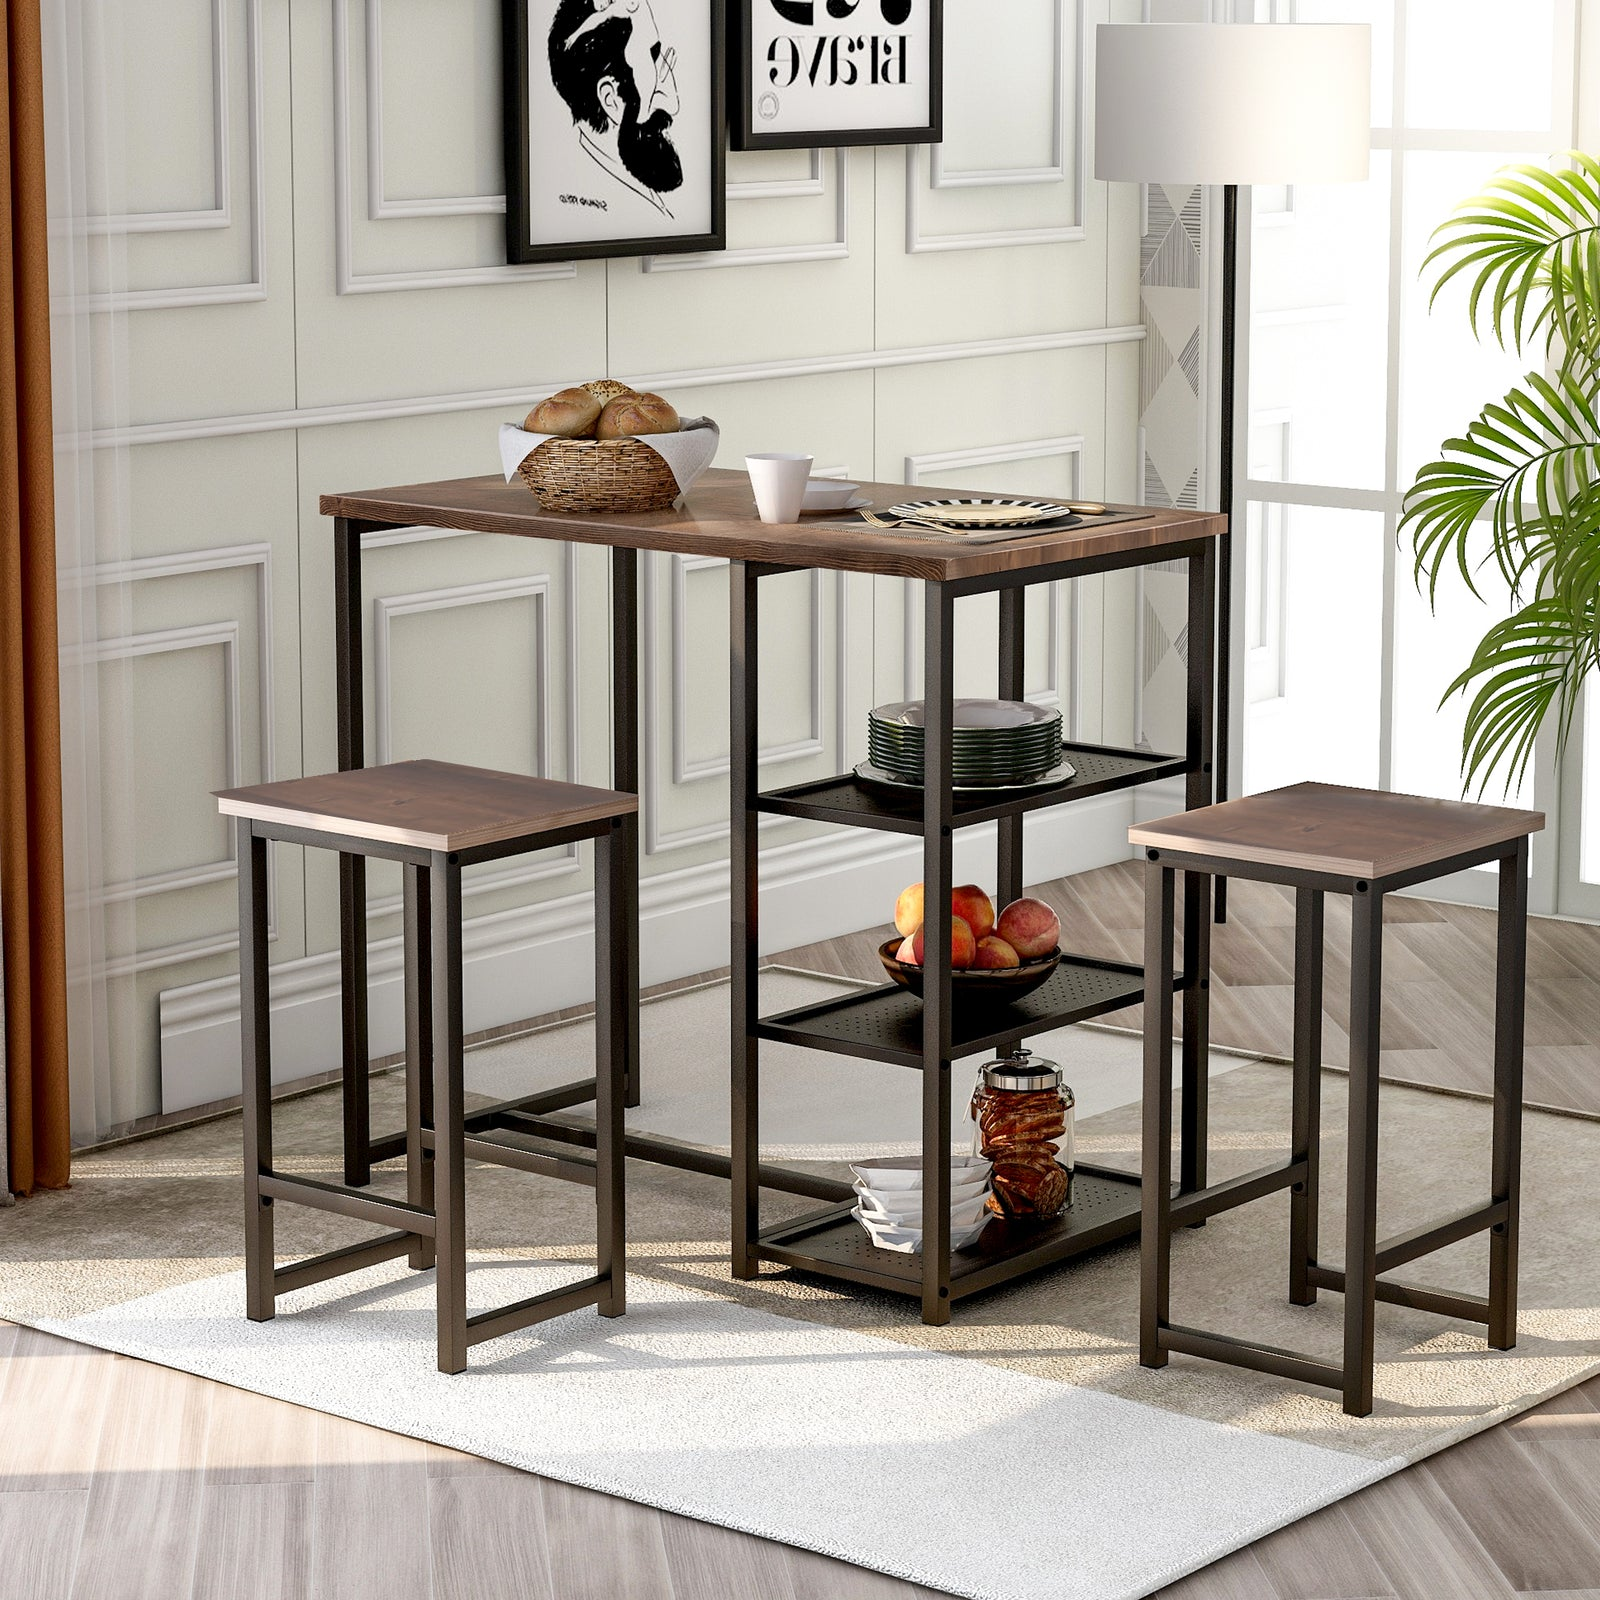 3 Counts - Modern Pub Set with Rectangular Table and Bar Stools - Black